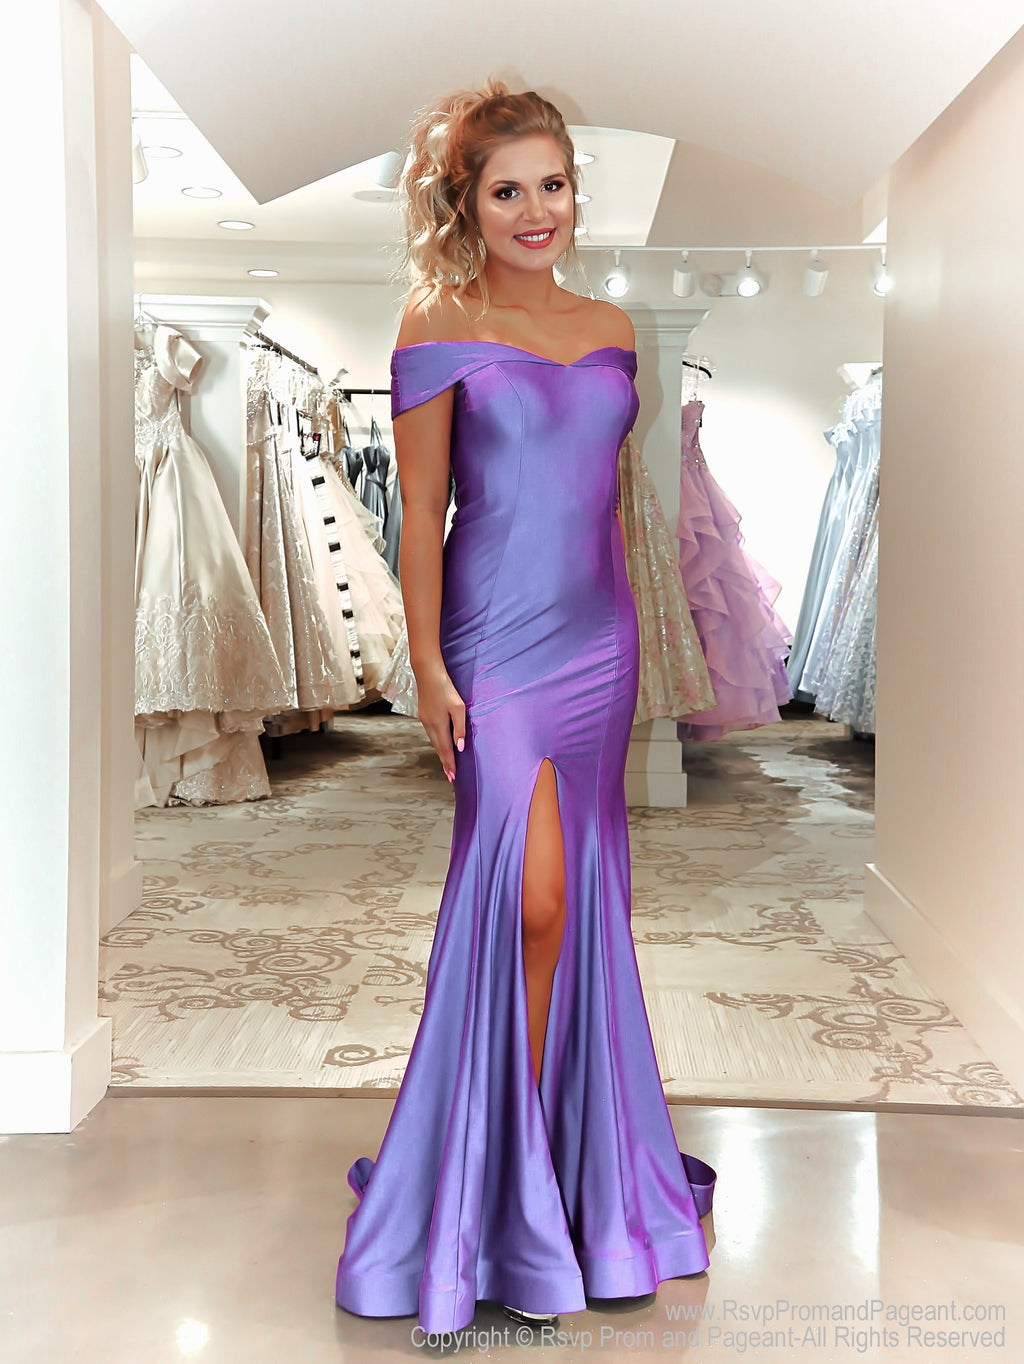 Model in a simple violet of the shoulder fitted gown with a slit. And it's at Rsvp Prom and Pageant, your source for the HOTTEST Prom and Pageant Dresses and Exclusive Evening Gowns and located in Atlanta, Georgia!